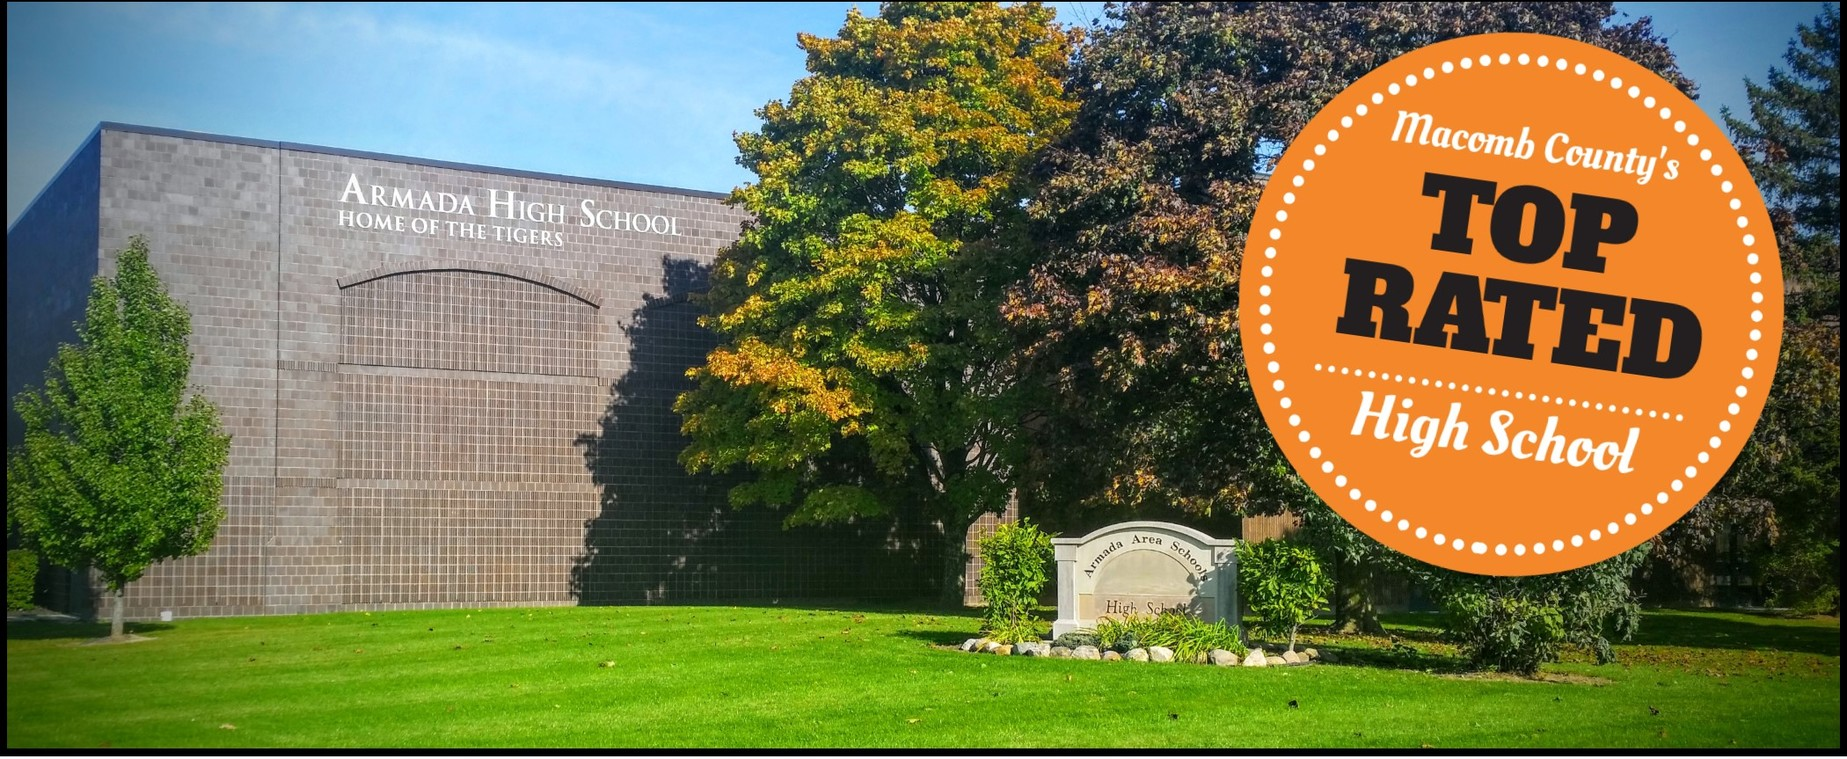 Armada High School Ranked #1 in Macomb County For A Third Straight Year!